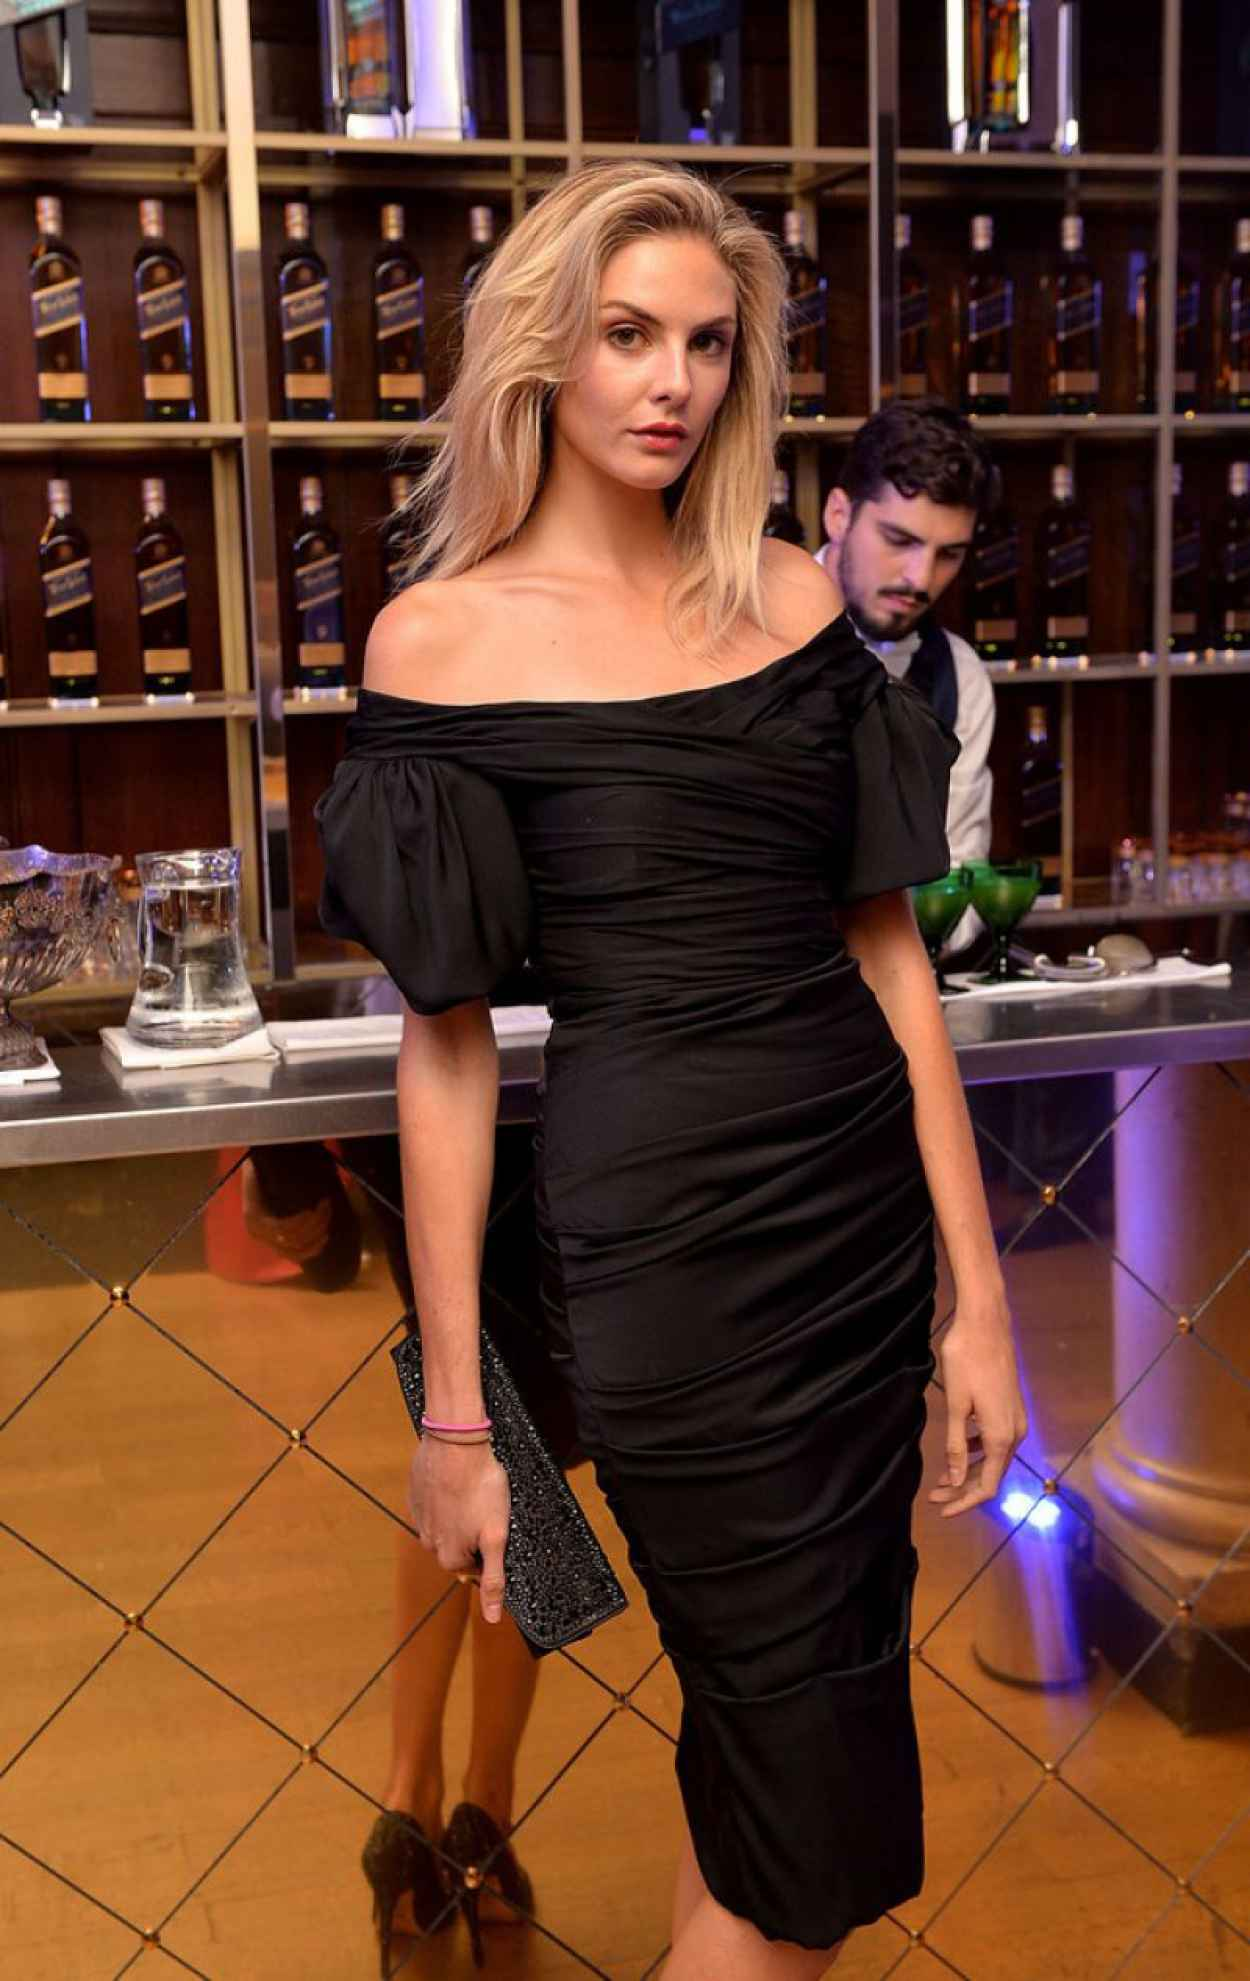 Tamsin Egerton - Symphony In Blue: A Journey To The Centre of The Glass in London-1